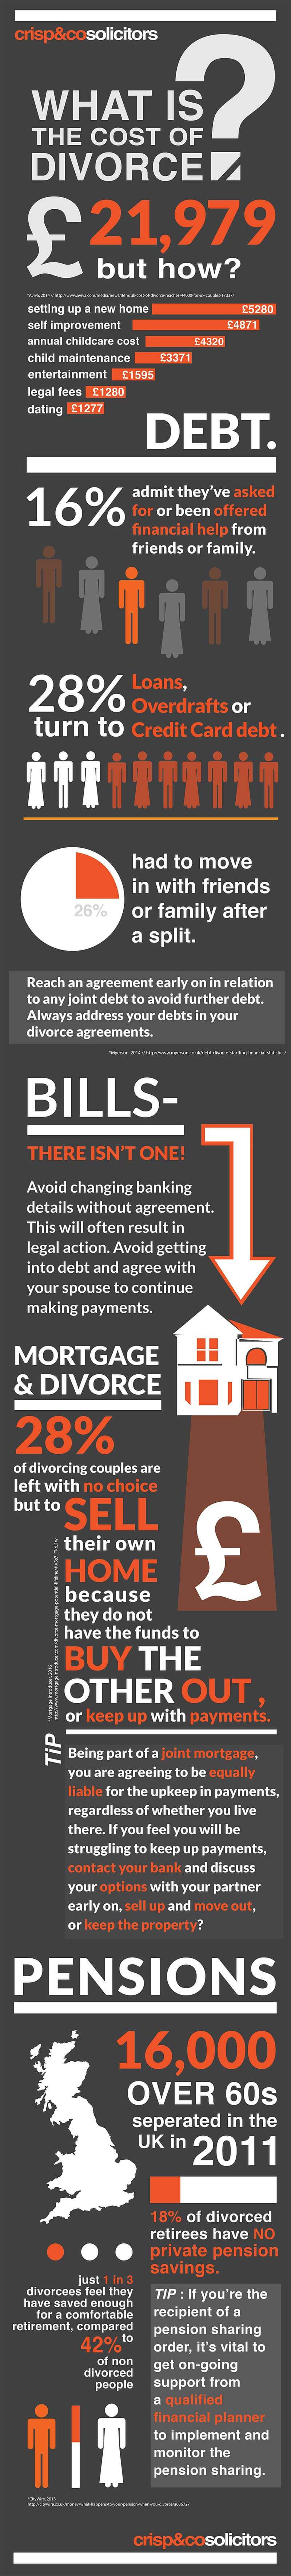 What is the the cost of a divorce?